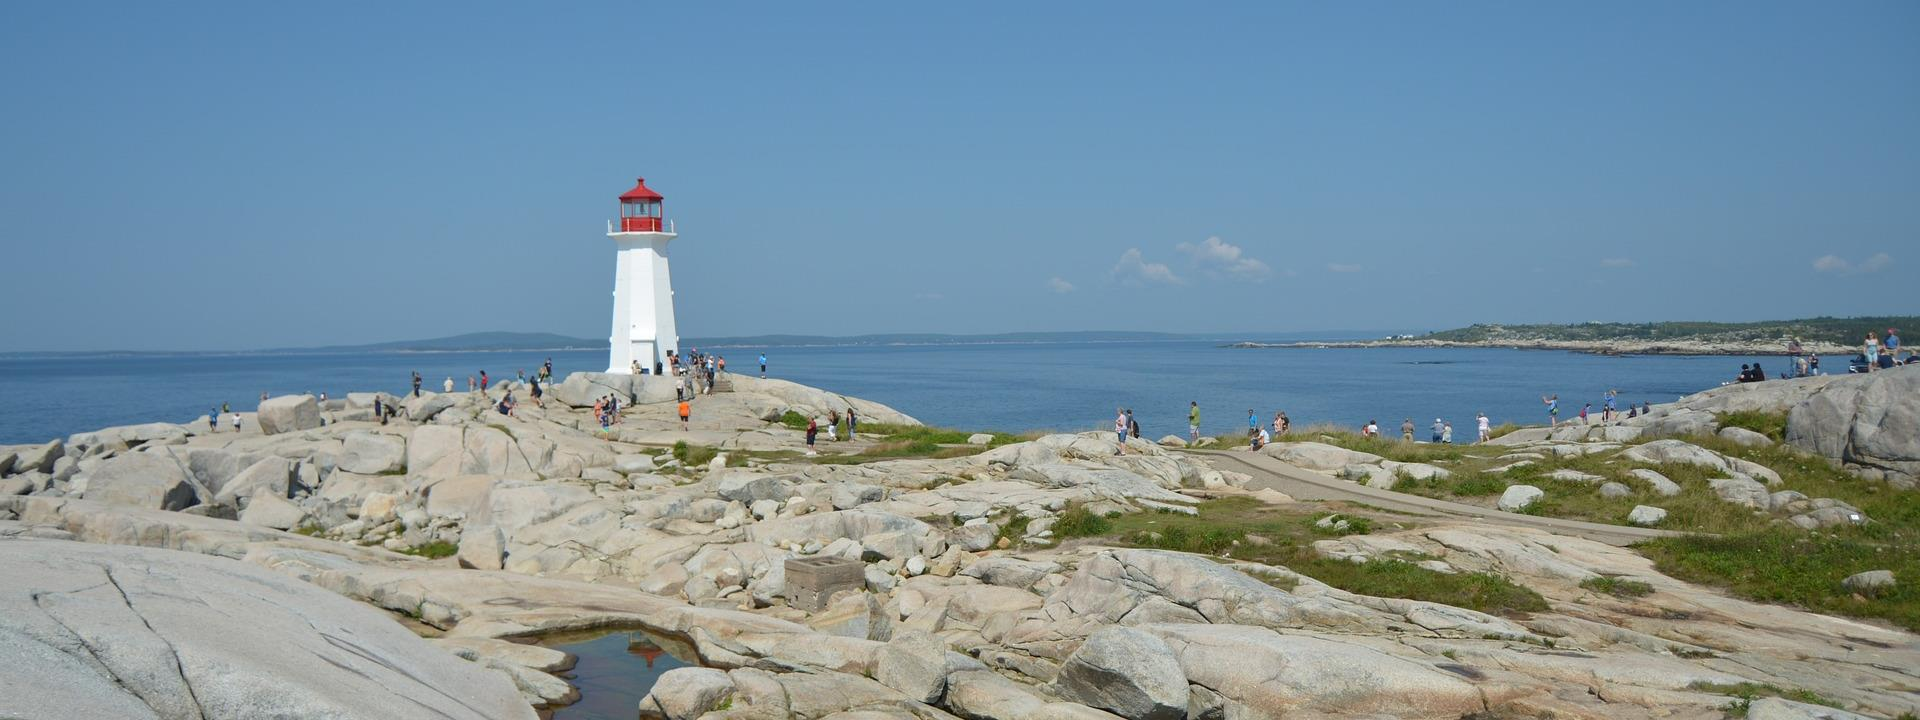 Travelhome Campervakanties Peggy's Cove